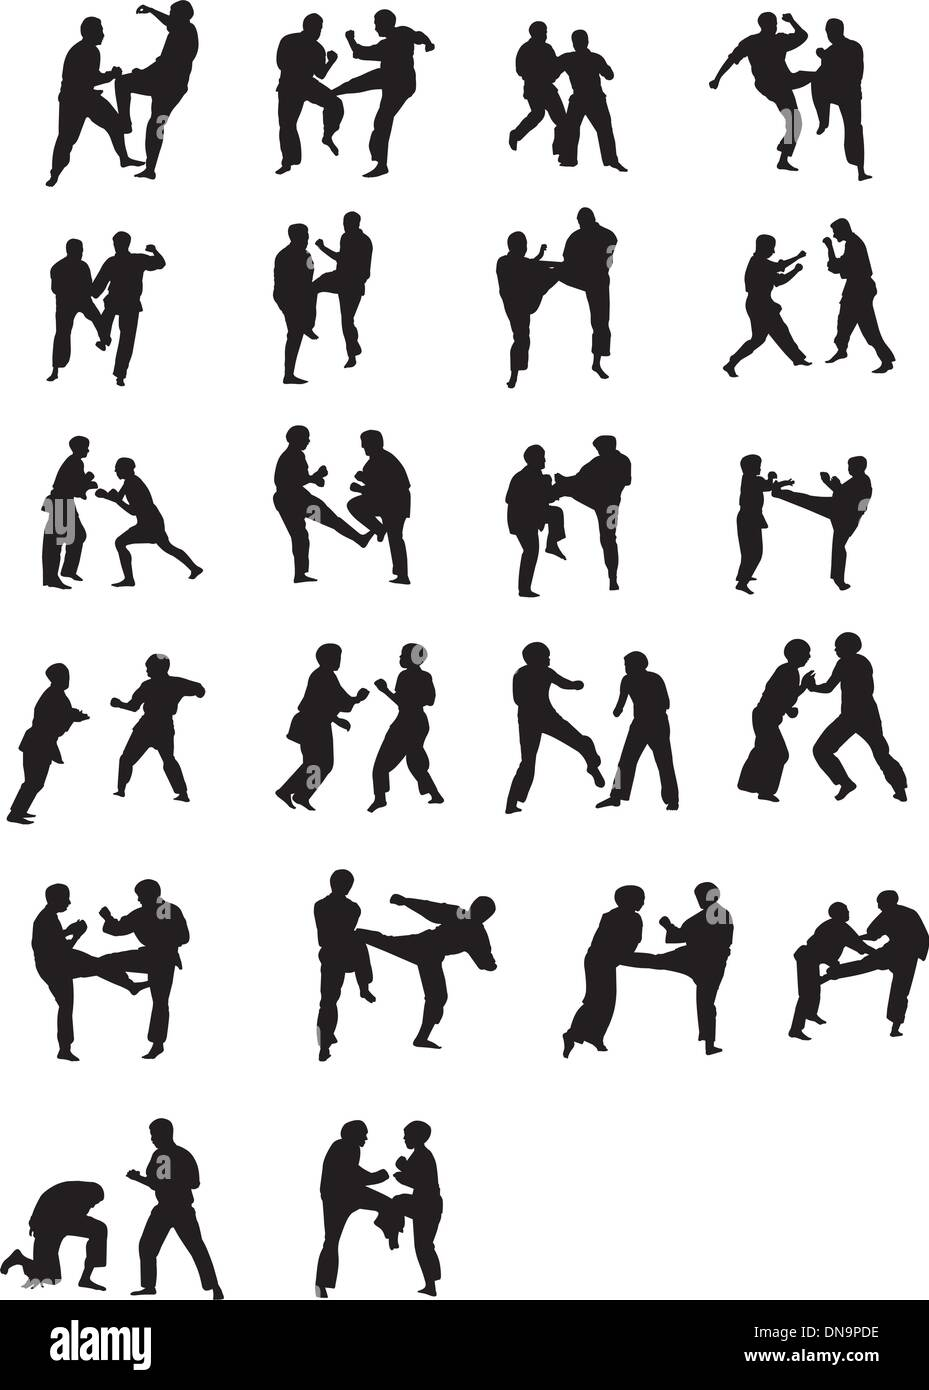 Martial Art Fighters - Stock Image